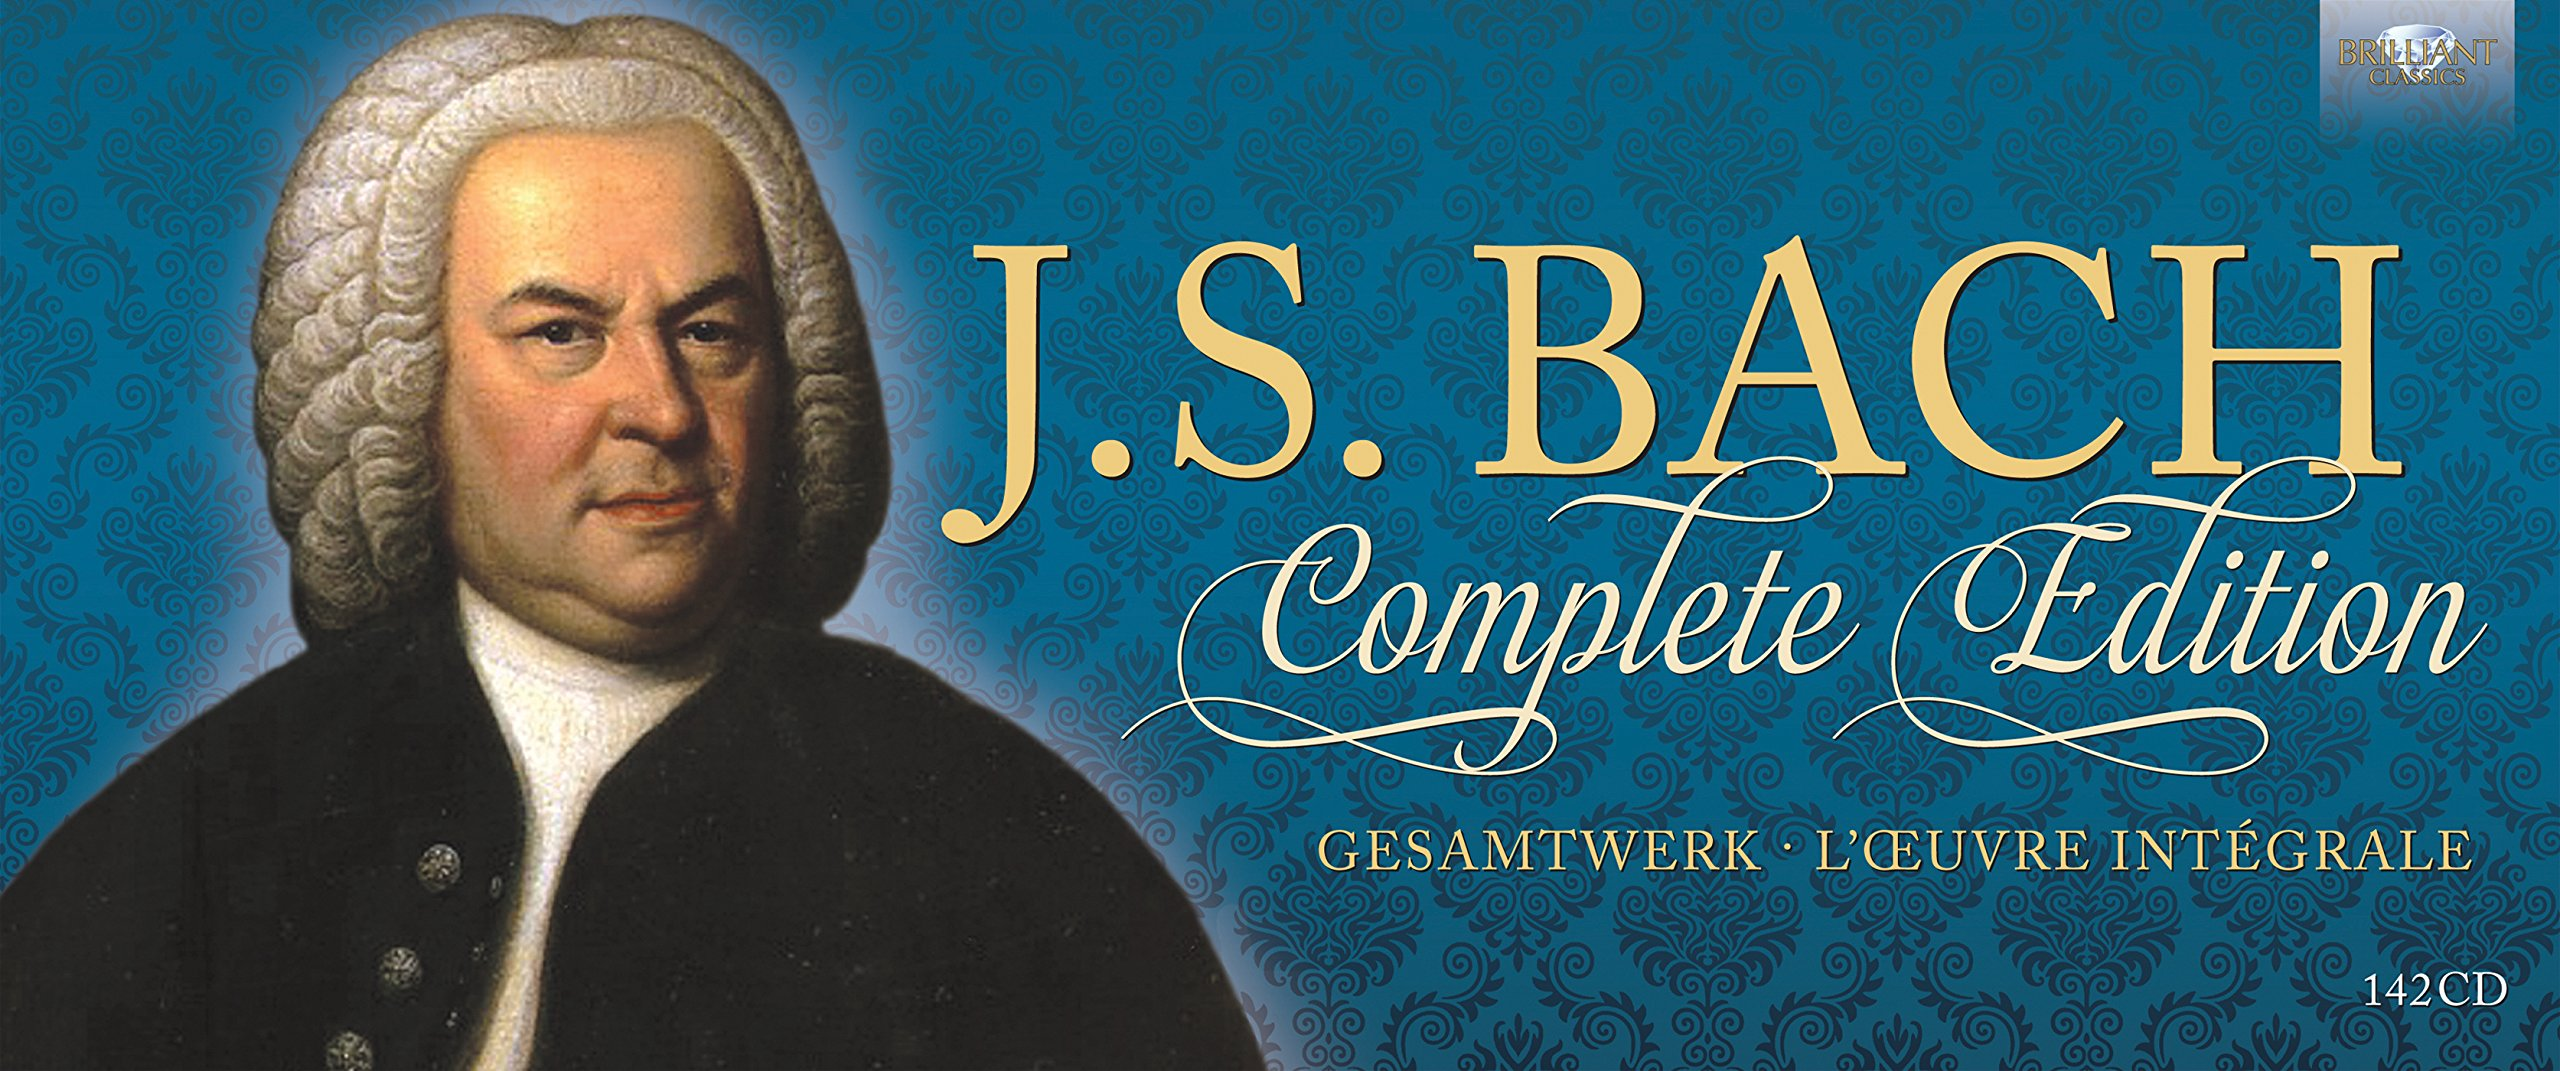 J. S. Bach - Complete Edition by Brilliant Classics